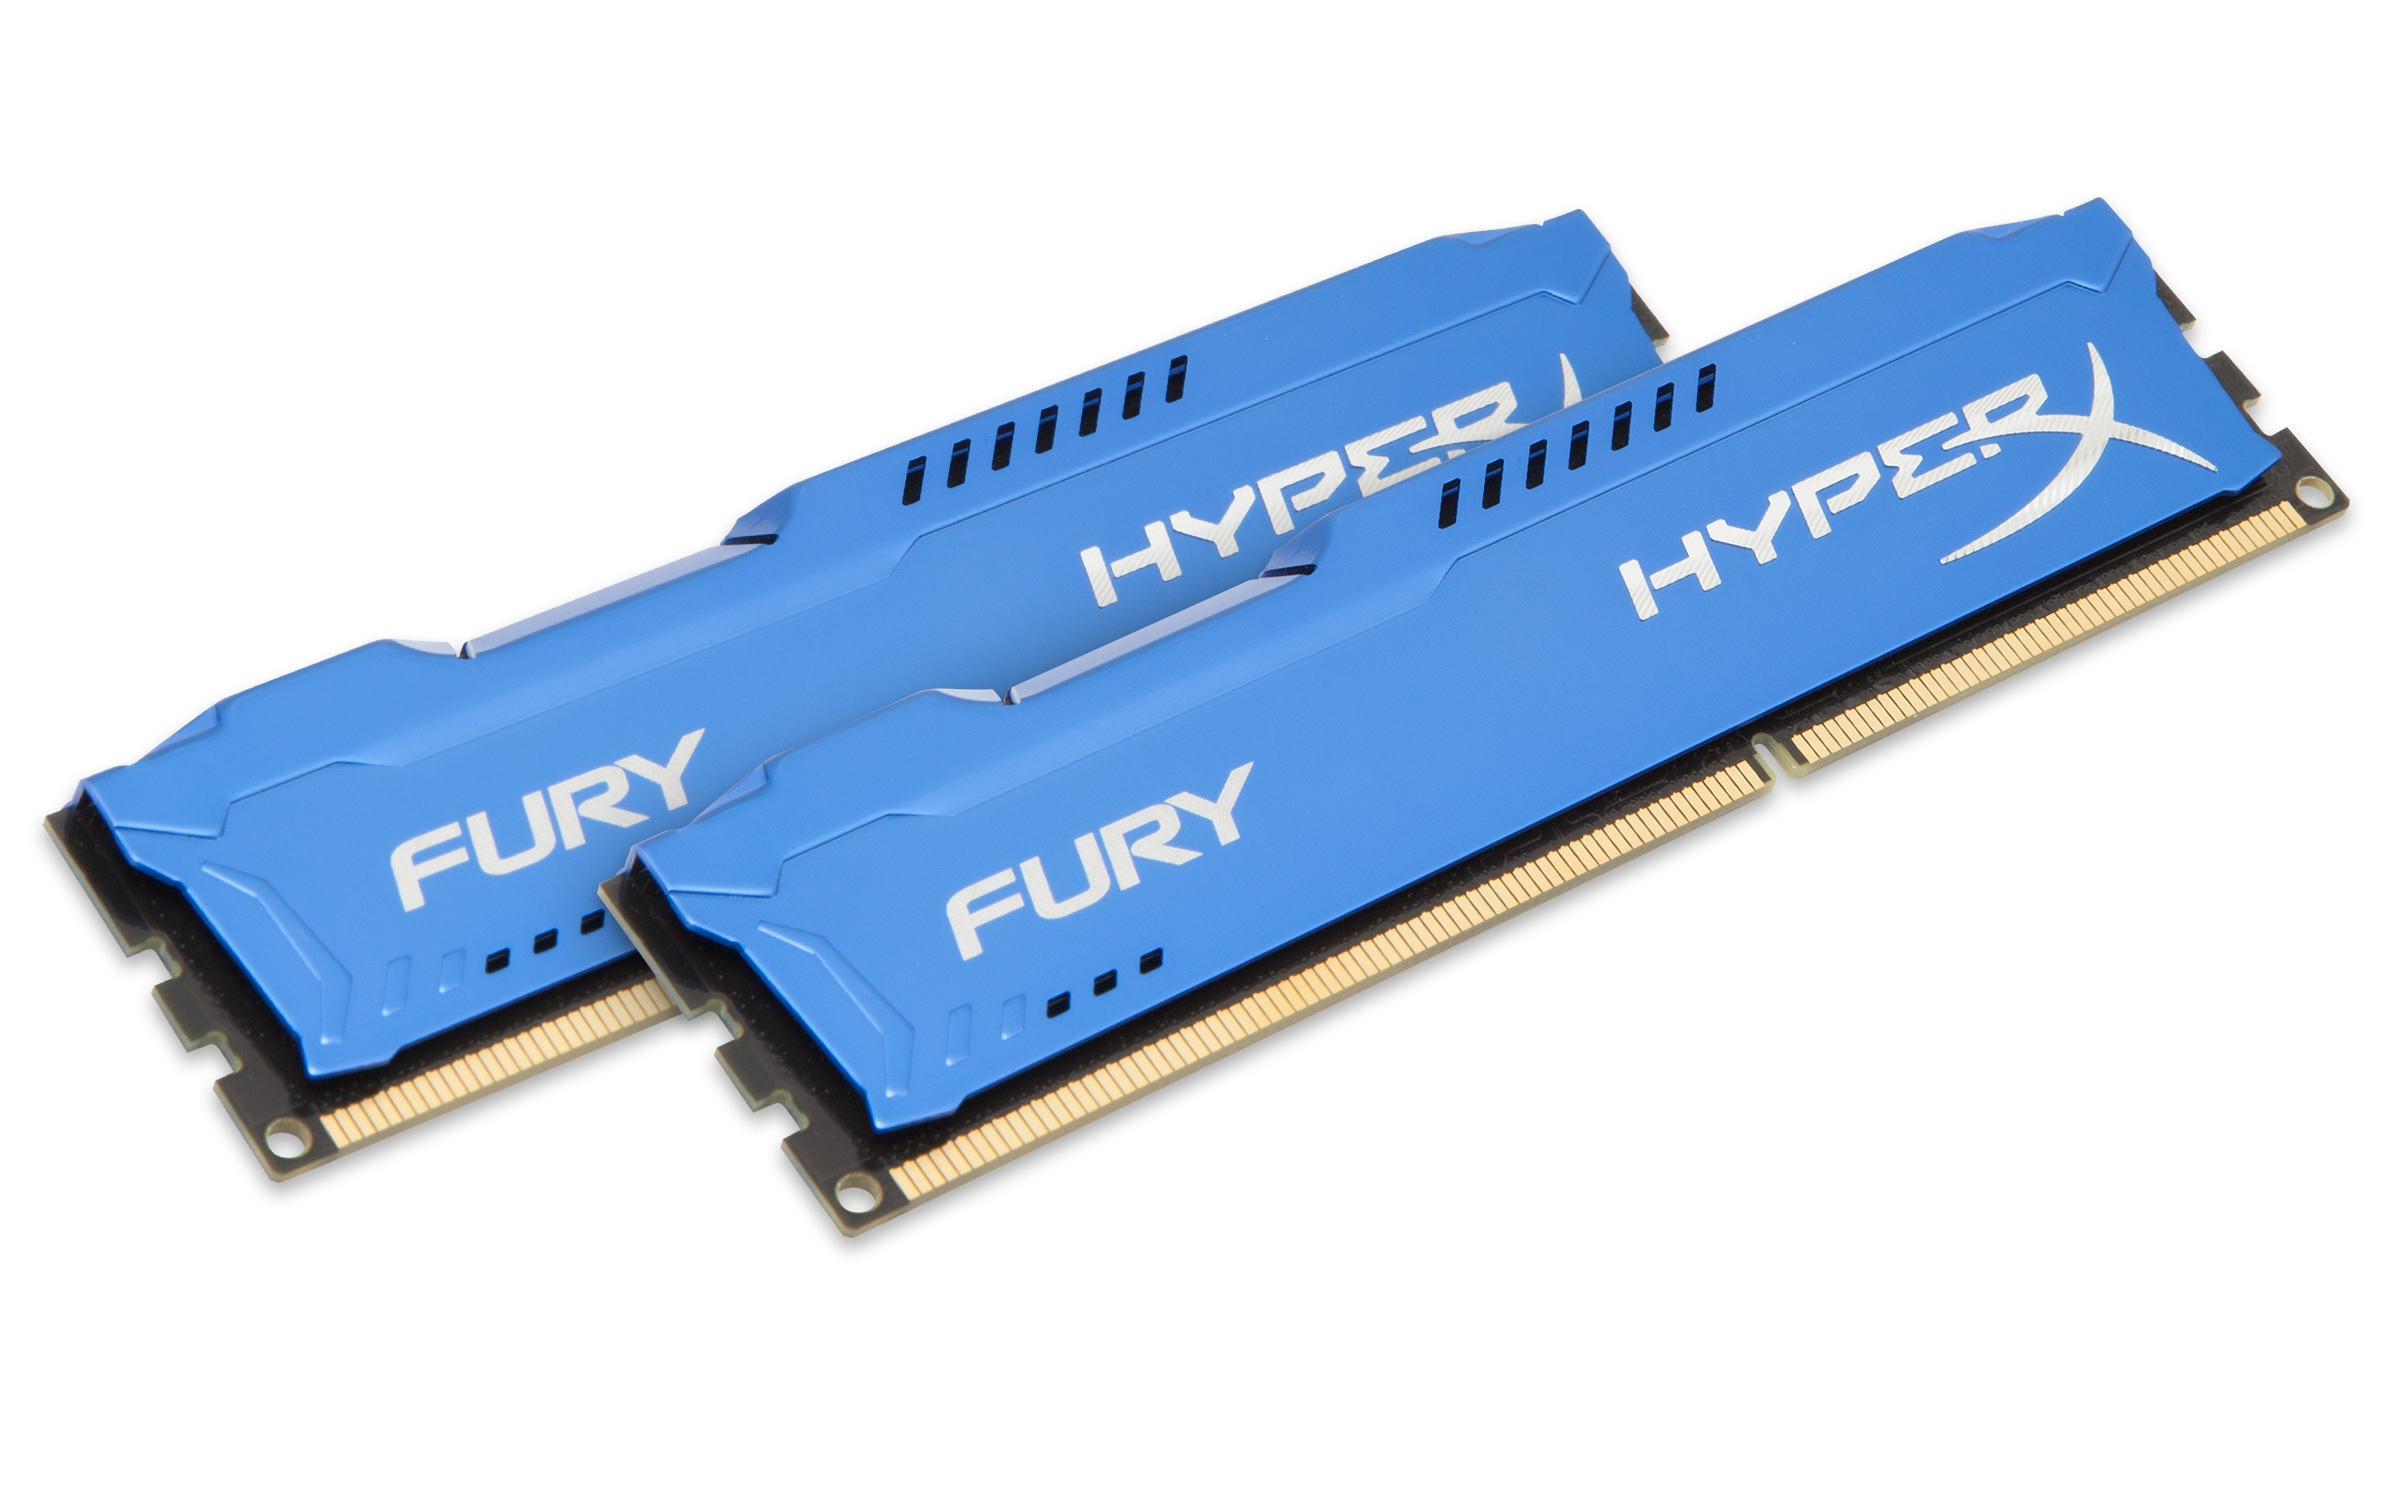 price of 16GB 1600MHz DDR3 CL10 DIMM (Kit of 2) HyperX FURY Blue on ShopHub | ecommerce, price check, start a business, sell online